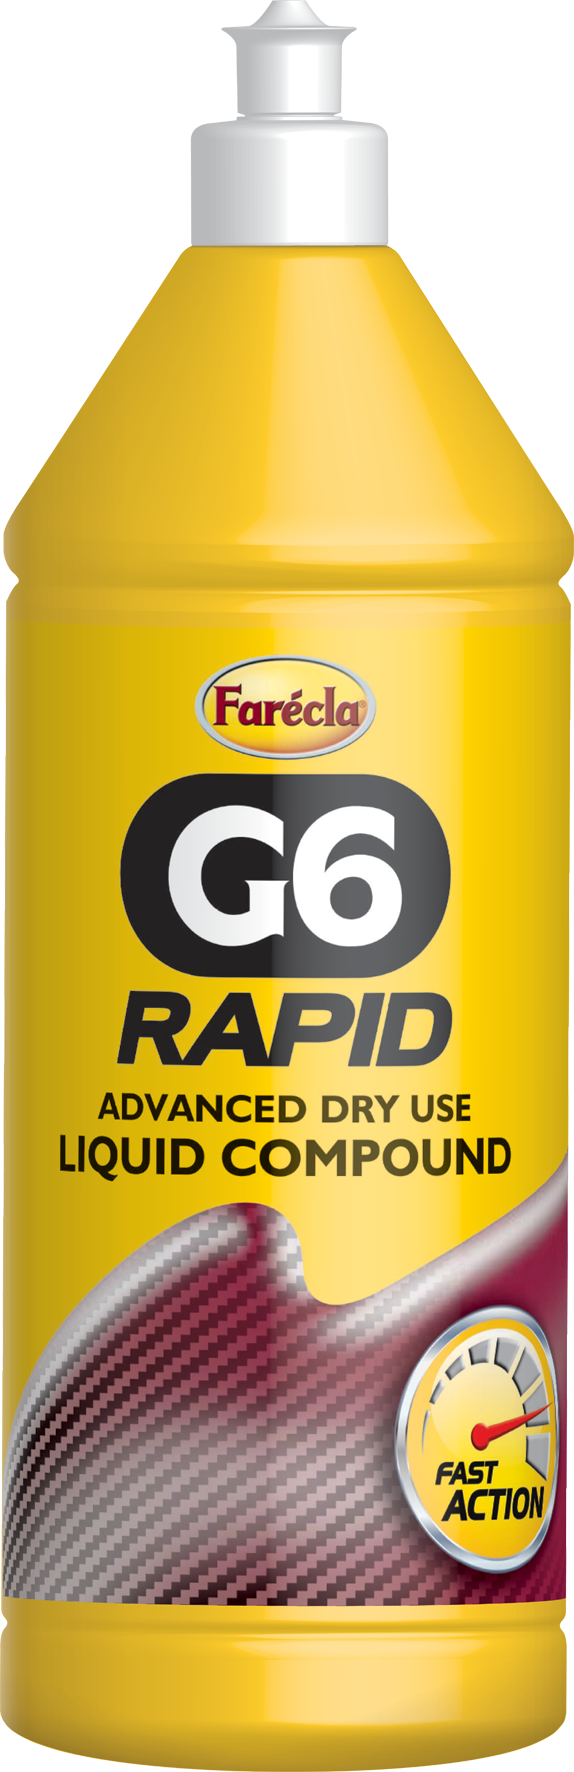 Farecla G6 Rapid Grade Liquid Compound 1L